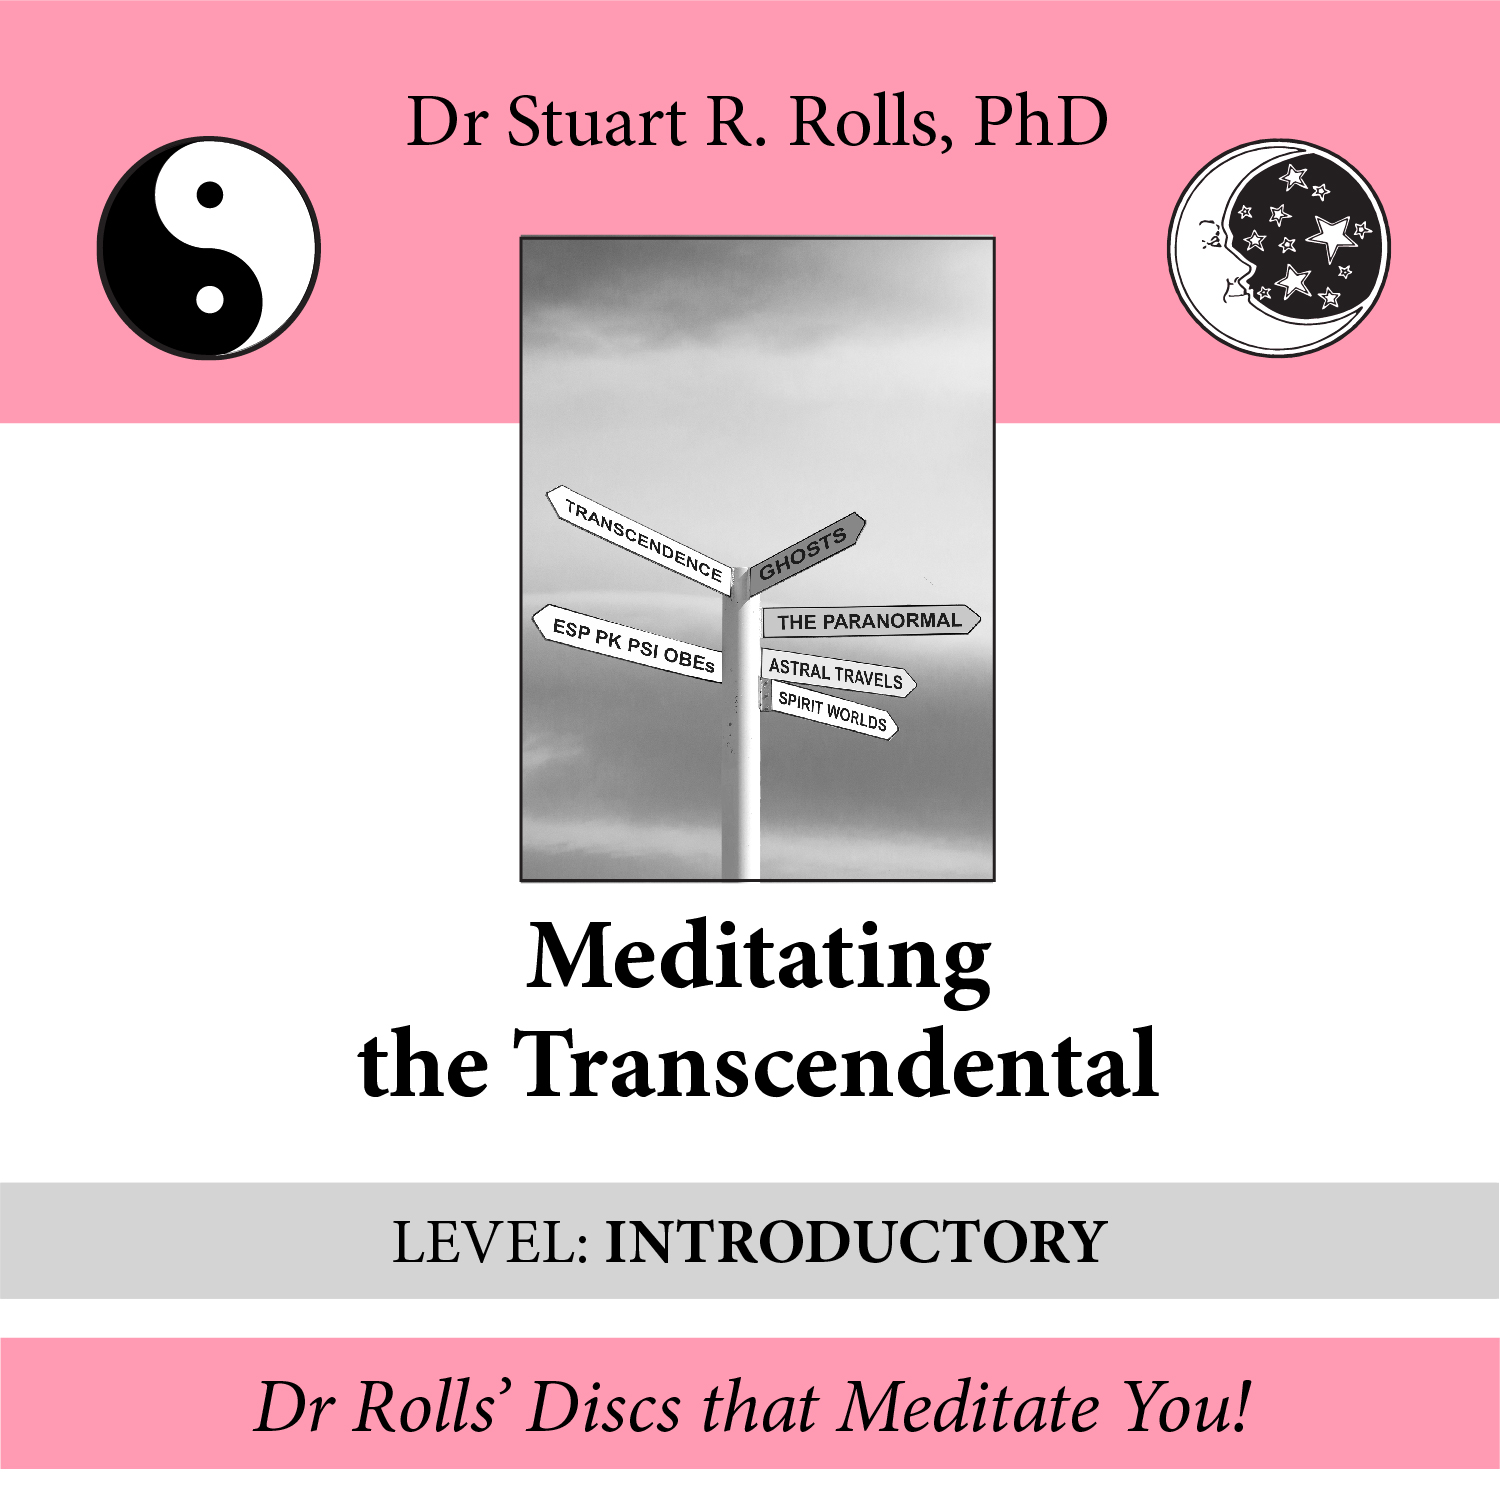 Meditating the Transcendental (Introductory Level)